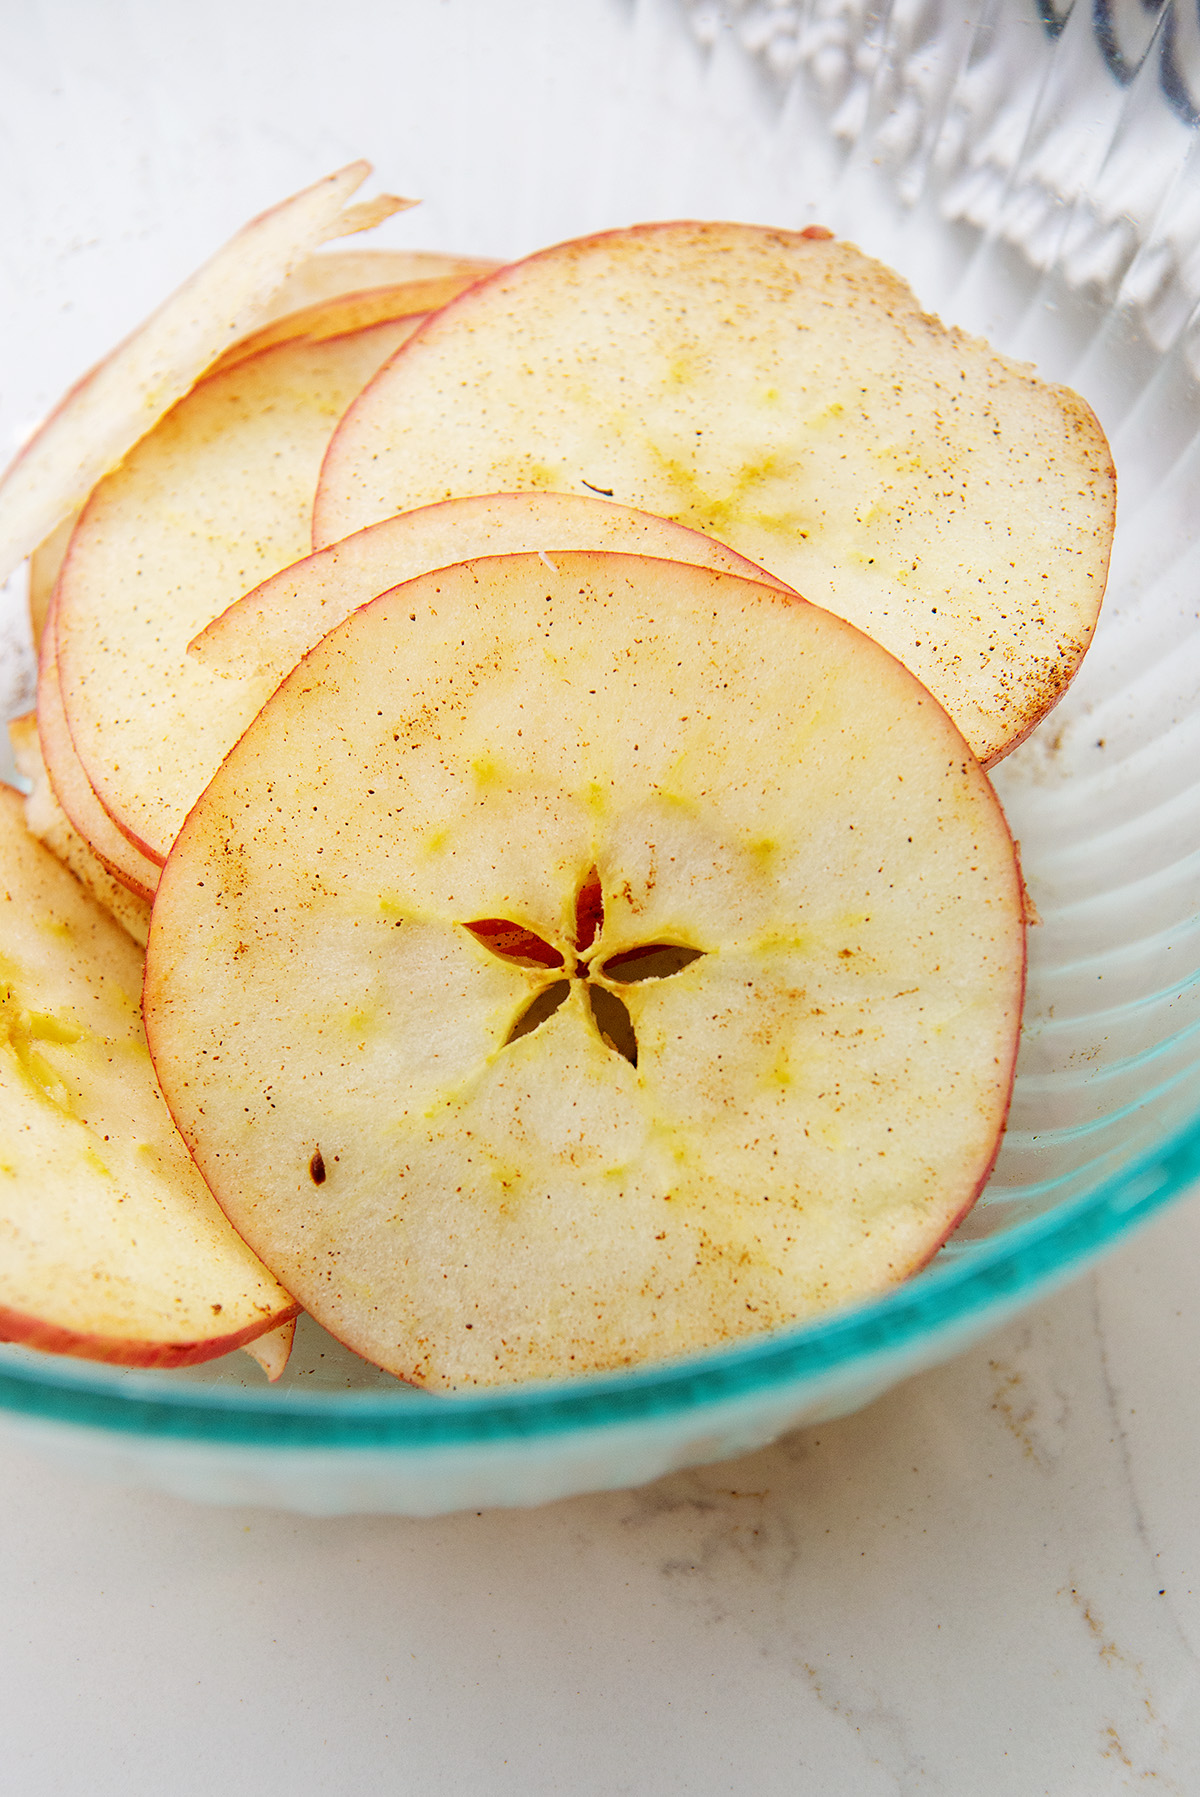 Apple slices in a clear glass bowl